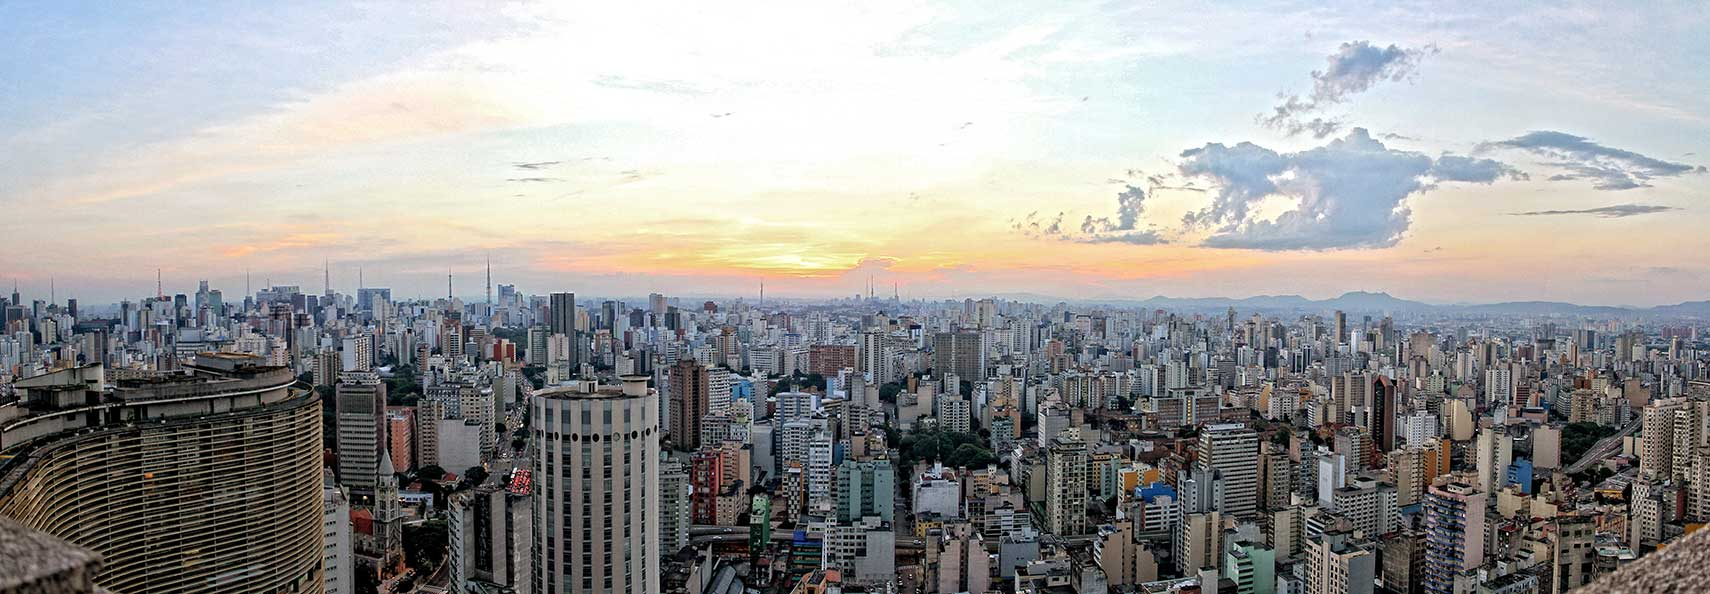 Google Map of São Paulo, Brazil - Nations Online Project